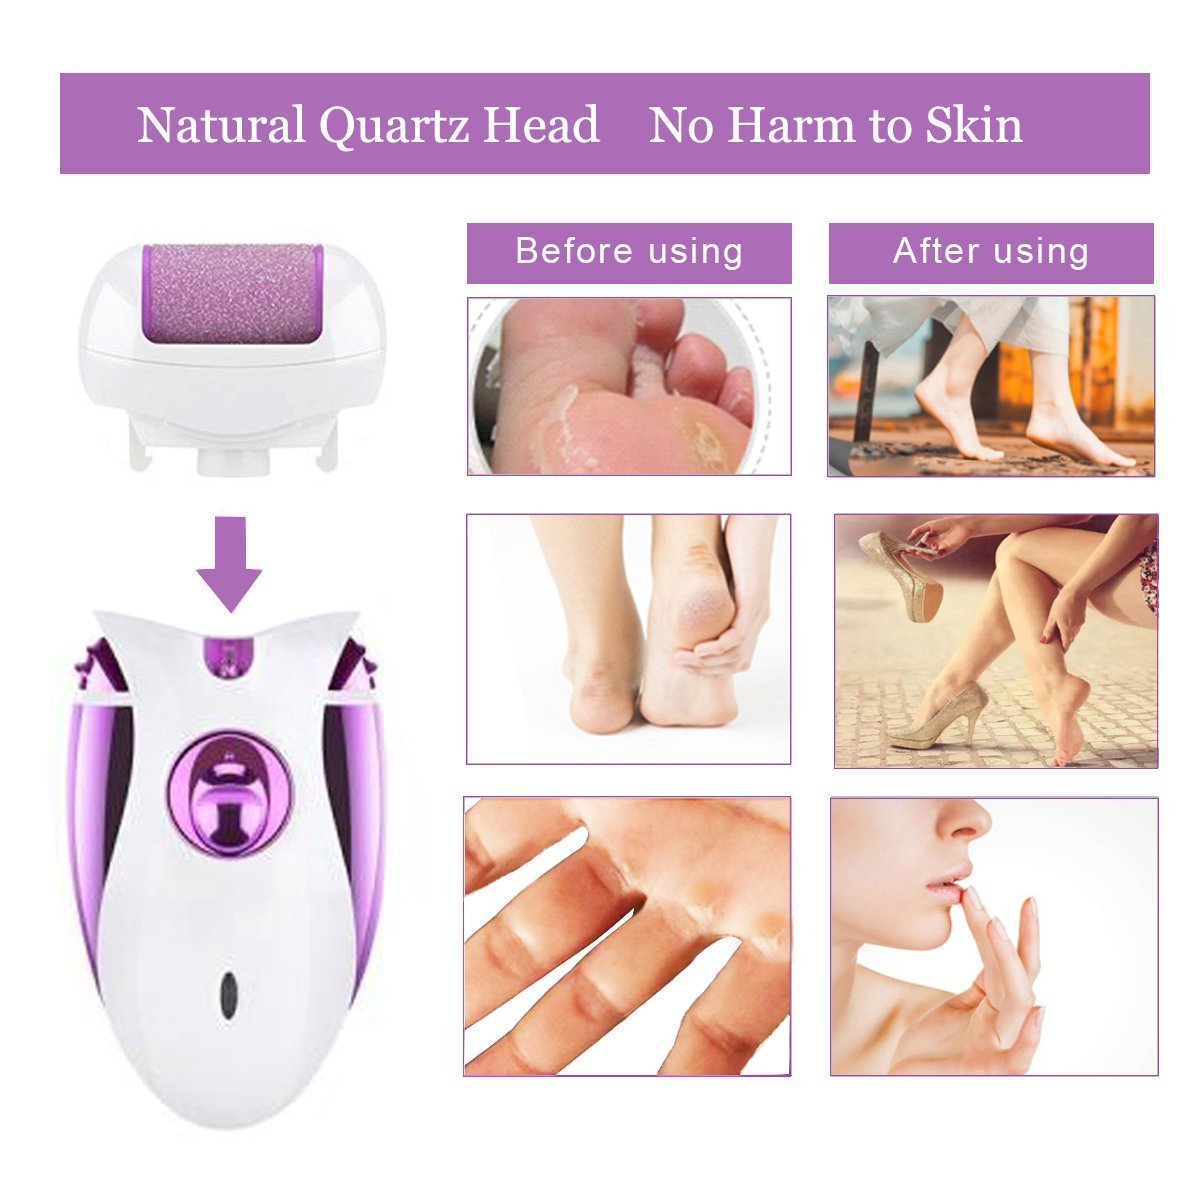 Rechargeable Electric Epilator, 4 in 1 Bikini Trimmer Callus Remover with 2 Adjustable Speed Ladies Shaver Hair Clipper Pedicure Foot Care Tool Womens Trimmer Hair Removal Hair Cutting Device